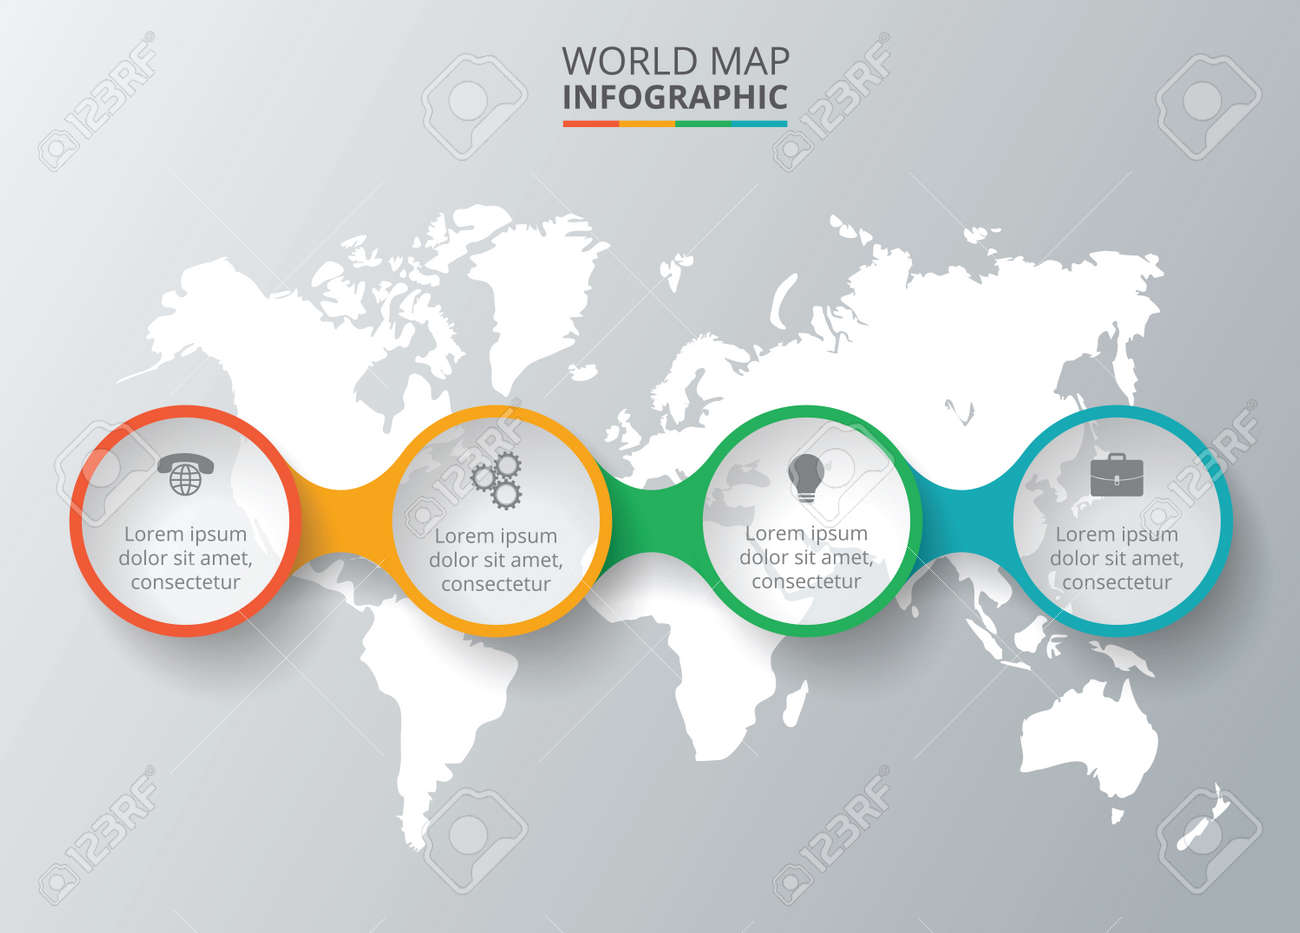 powerpoint world map template powerpoint world map powerpoint, Modern powerpoint